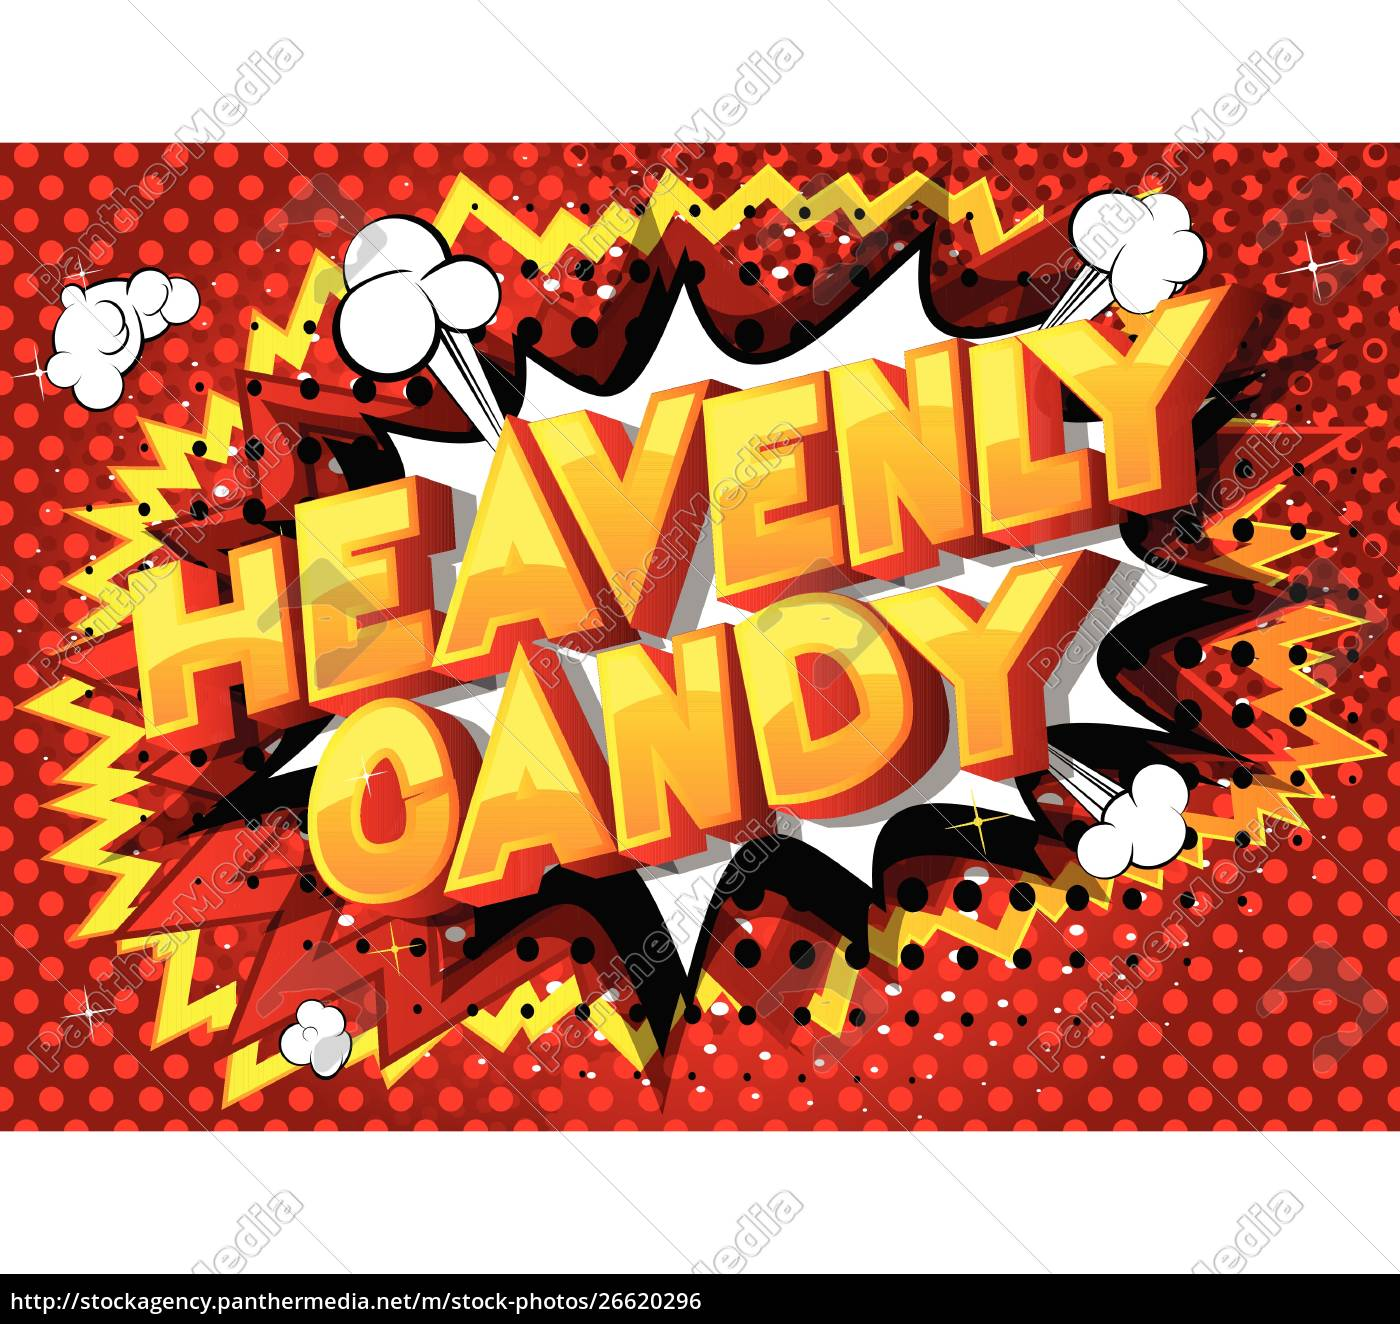 heavenly, candy, -, comic, book, style - 26620296